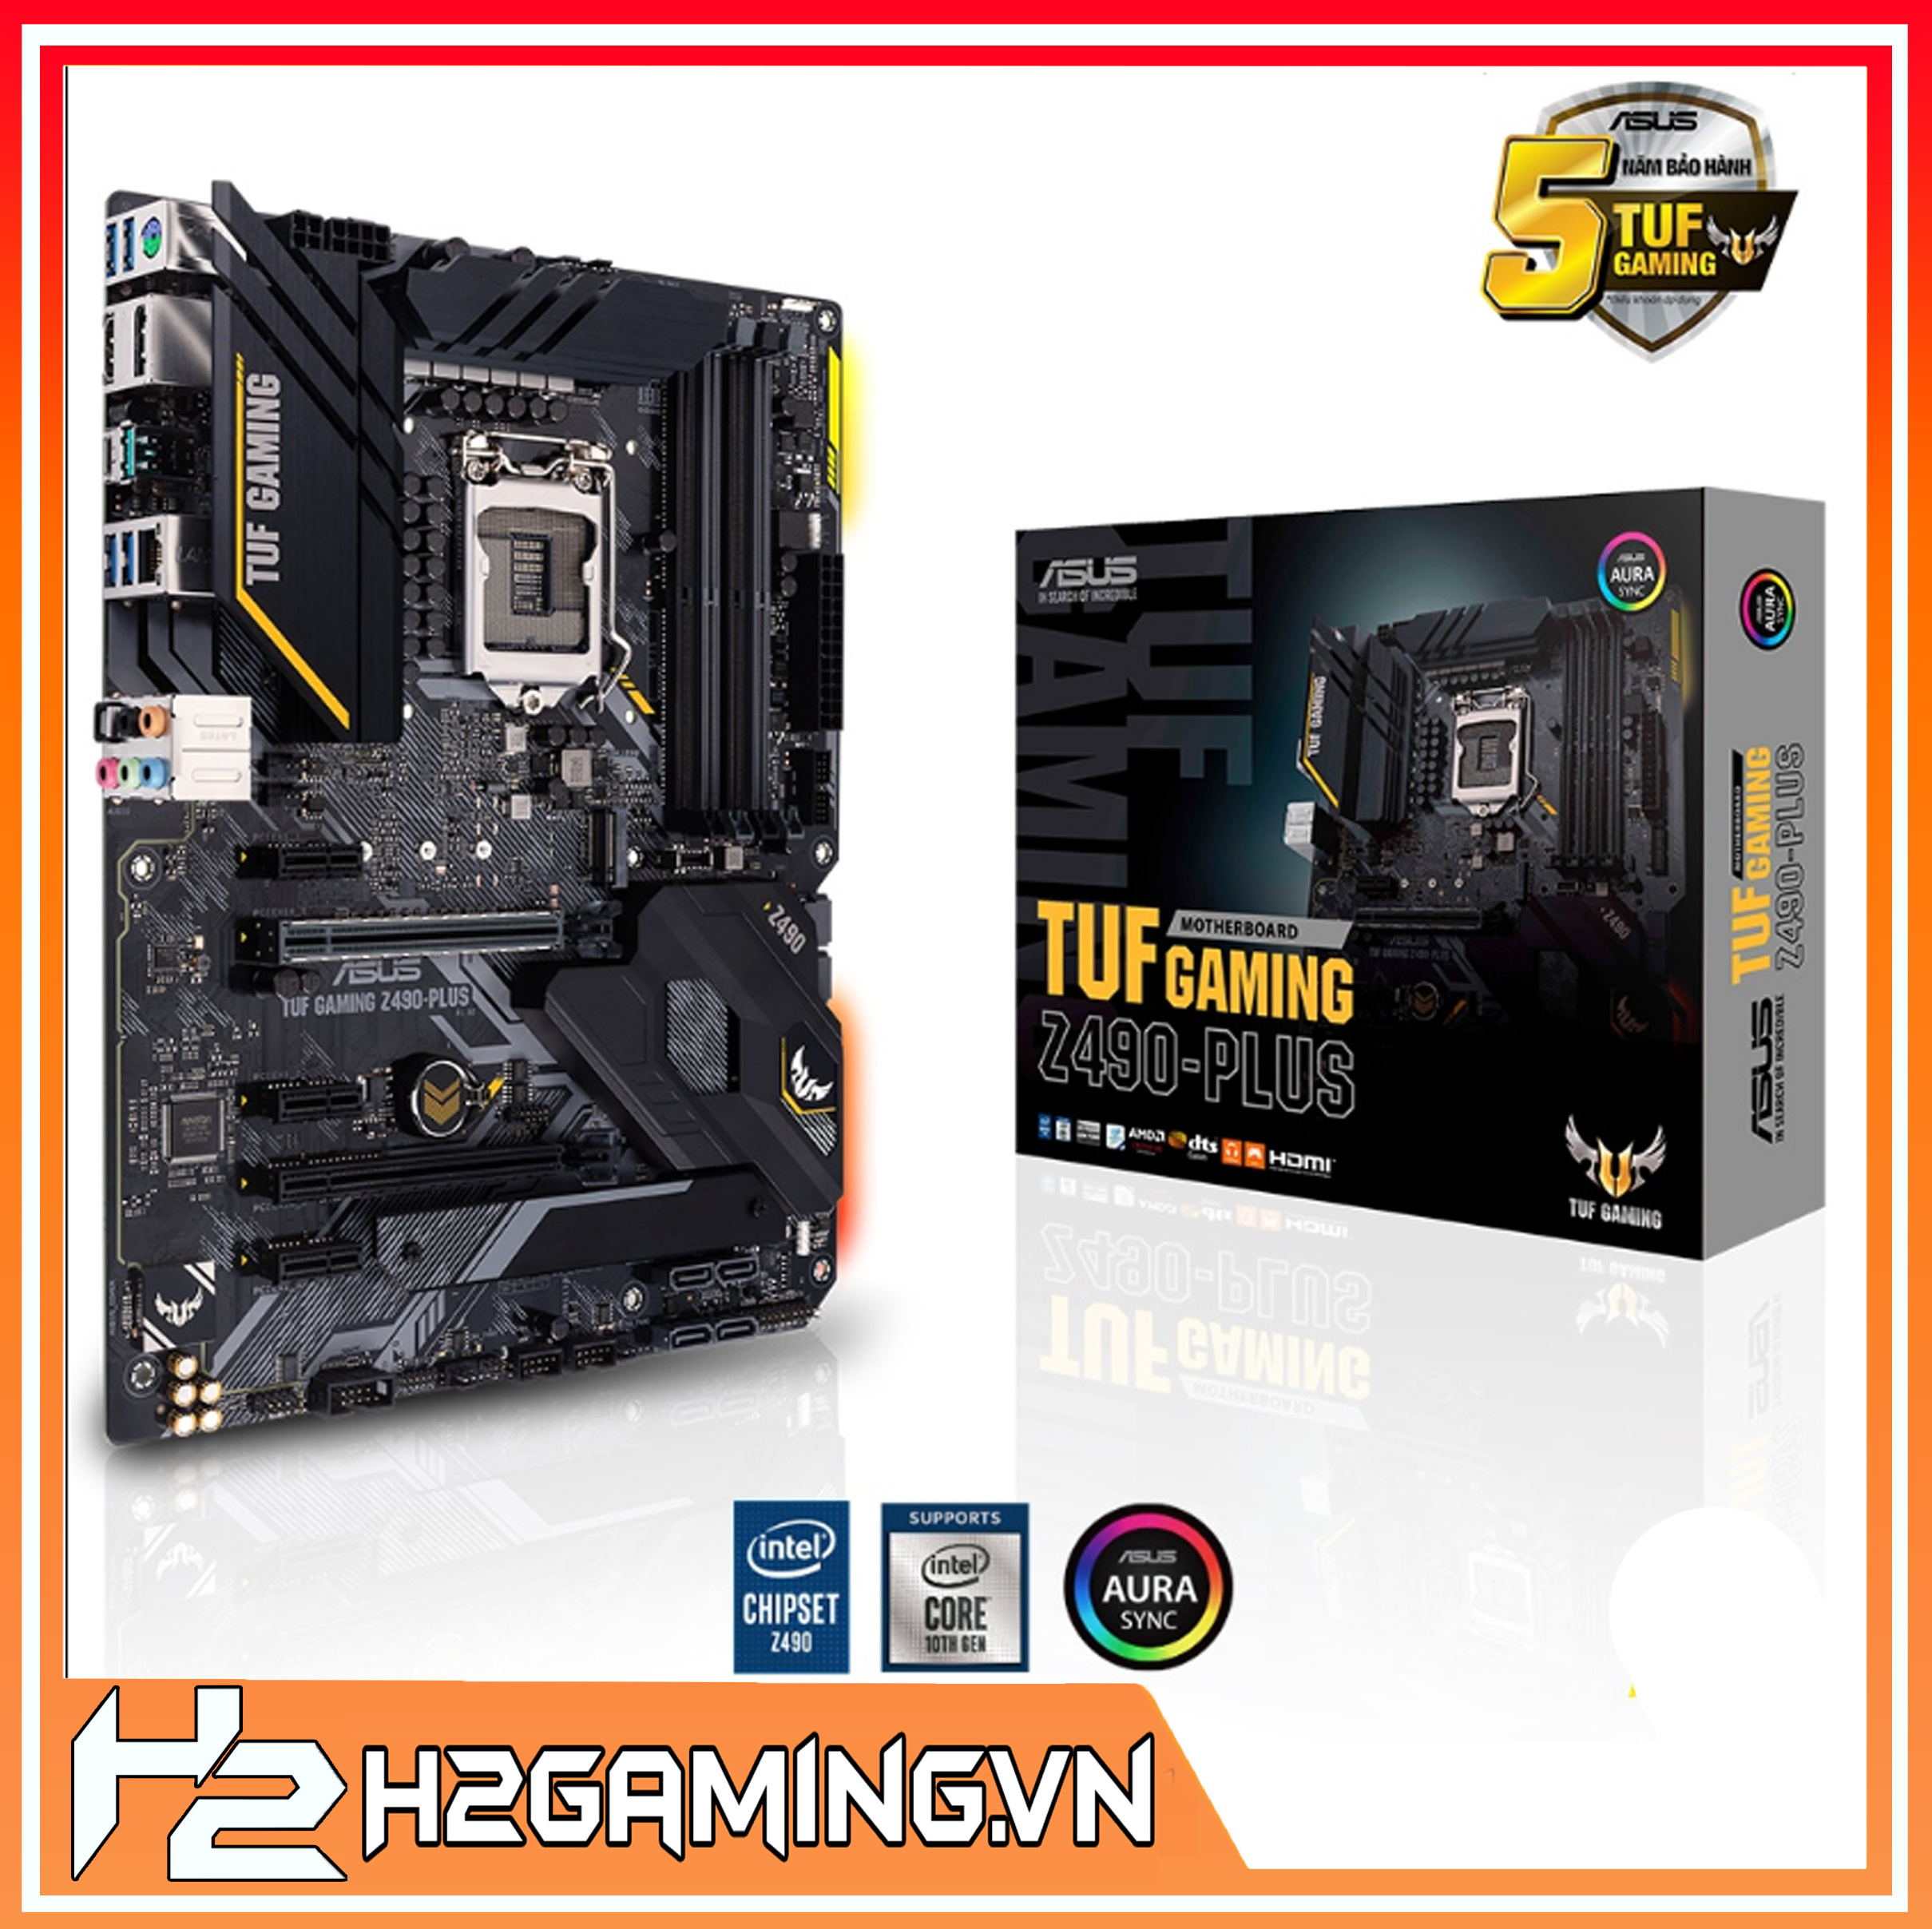 TUF_Gaming_Z490-PLUS